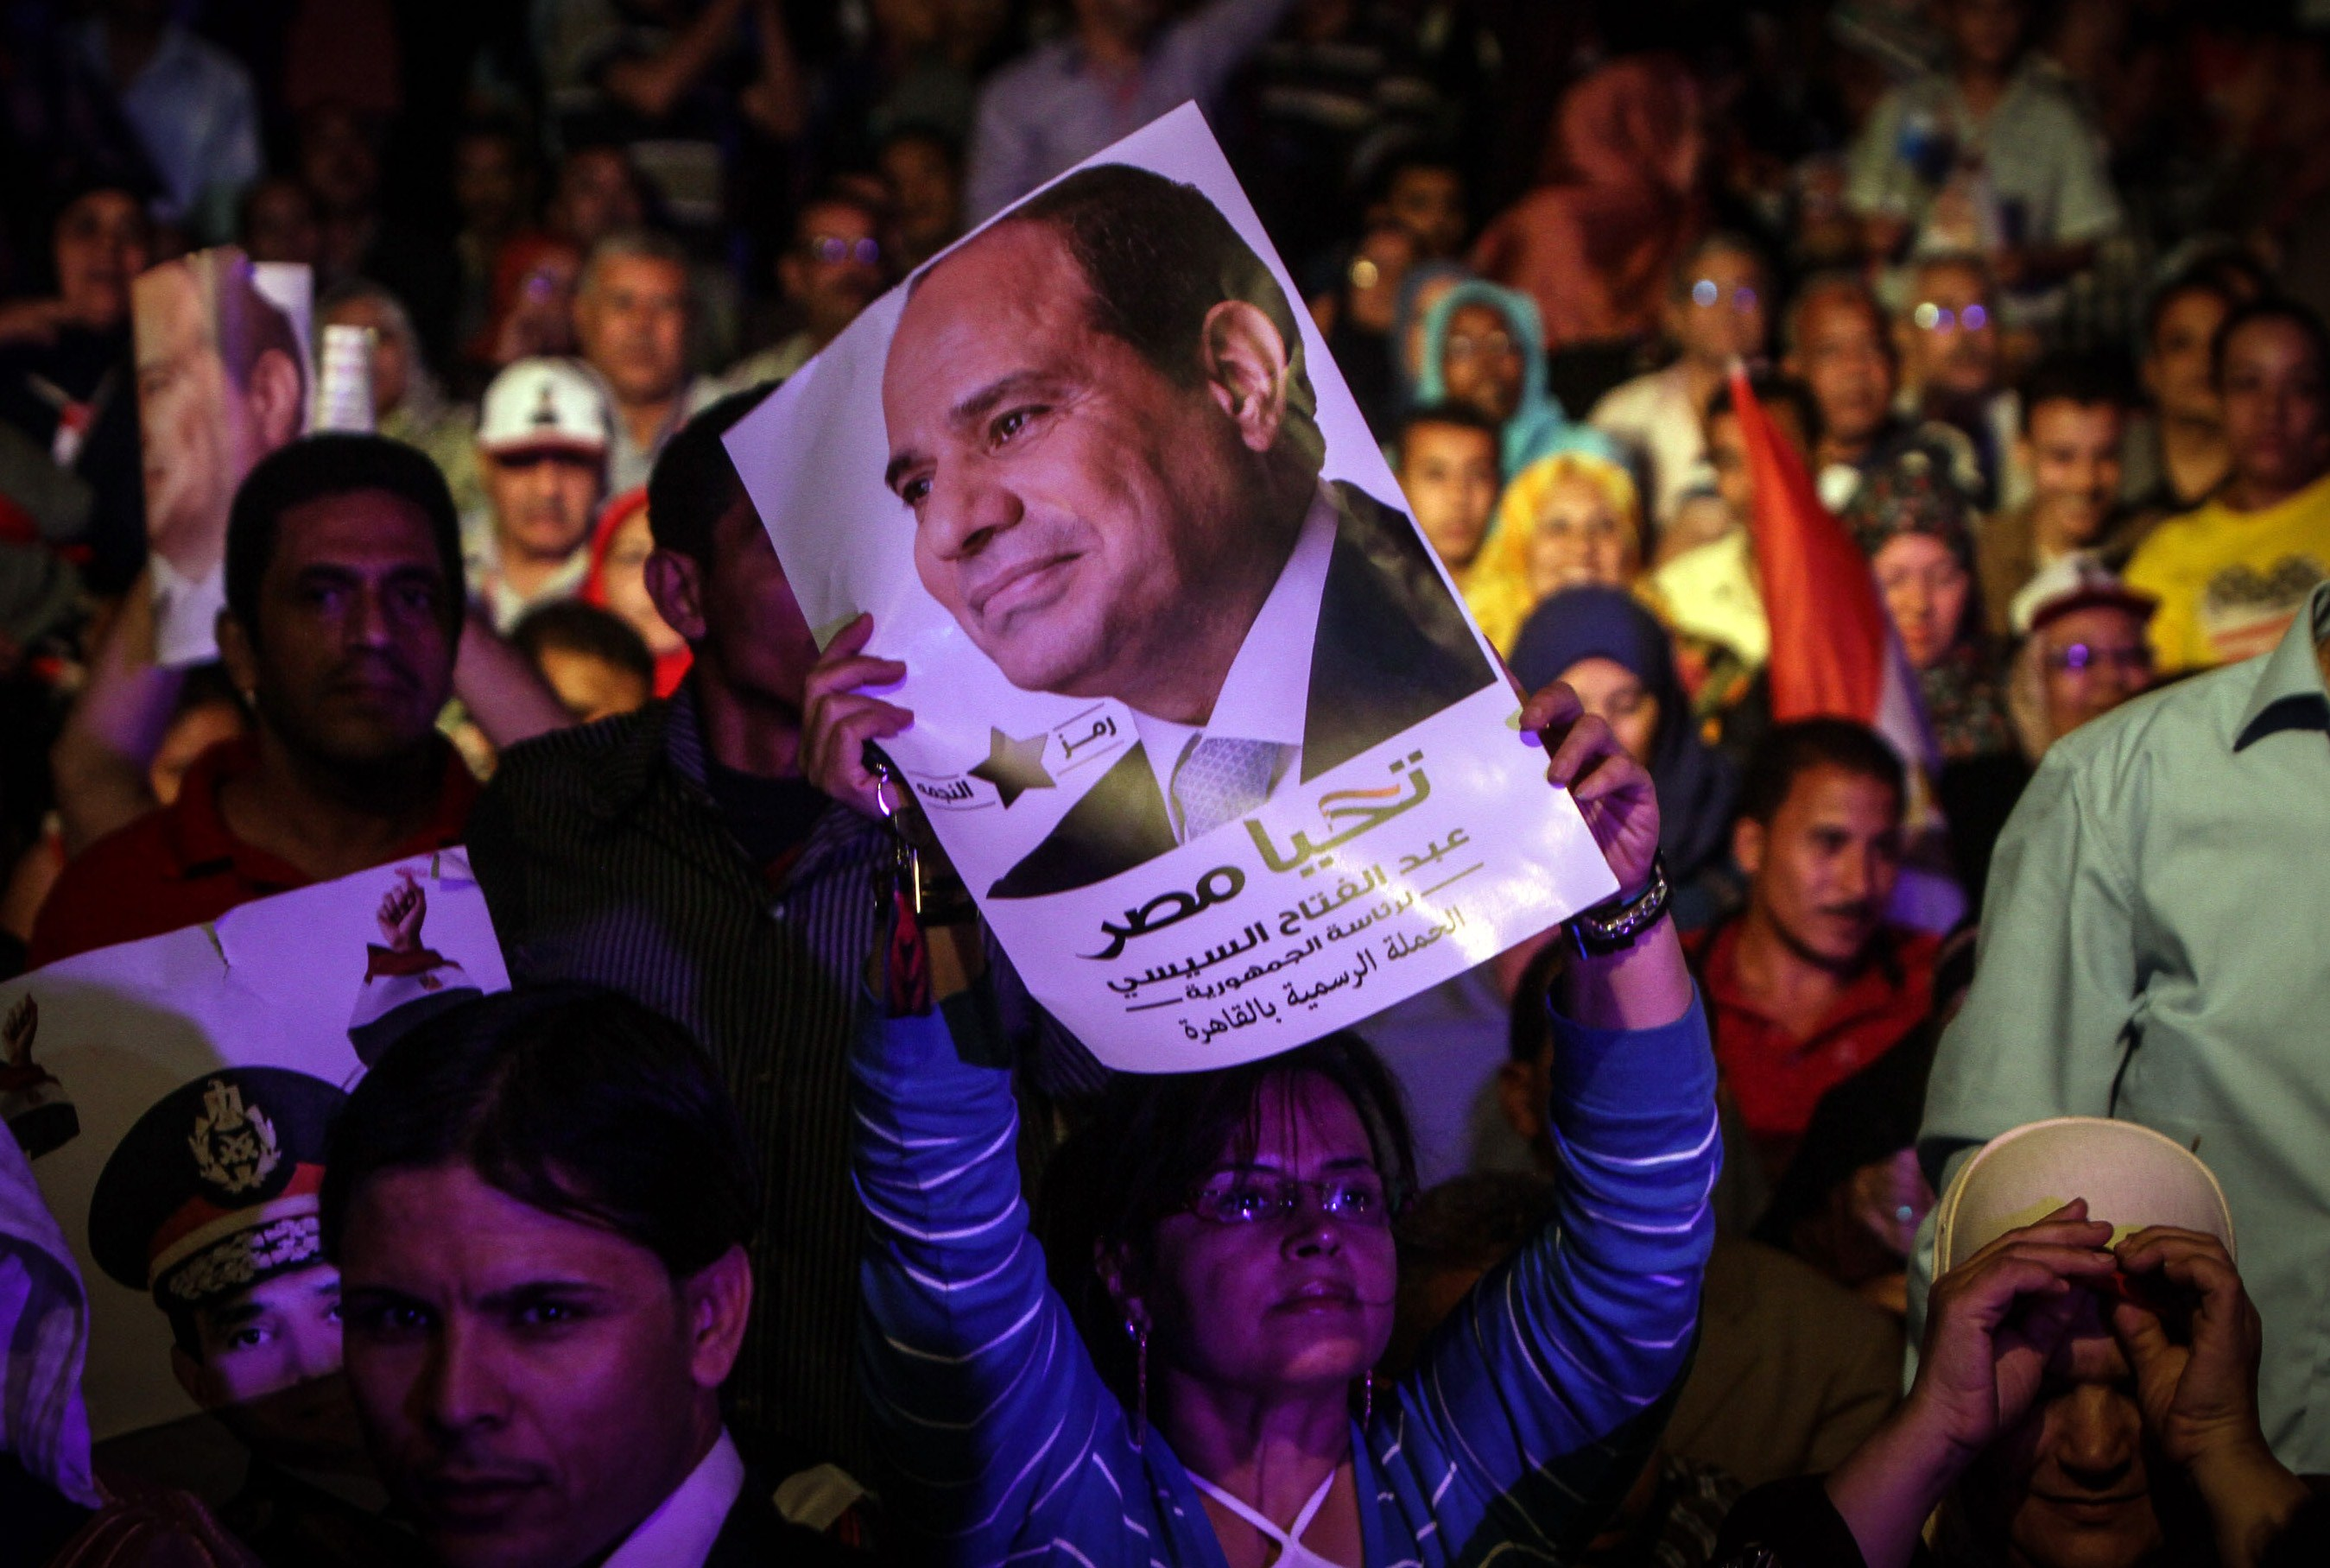 In June 2013, Egytians took the street in massive numbers once again, demanding the ouster of former president Mohamed Morsi (AFP PHOTO / MOHAMED EL-SHAHED)